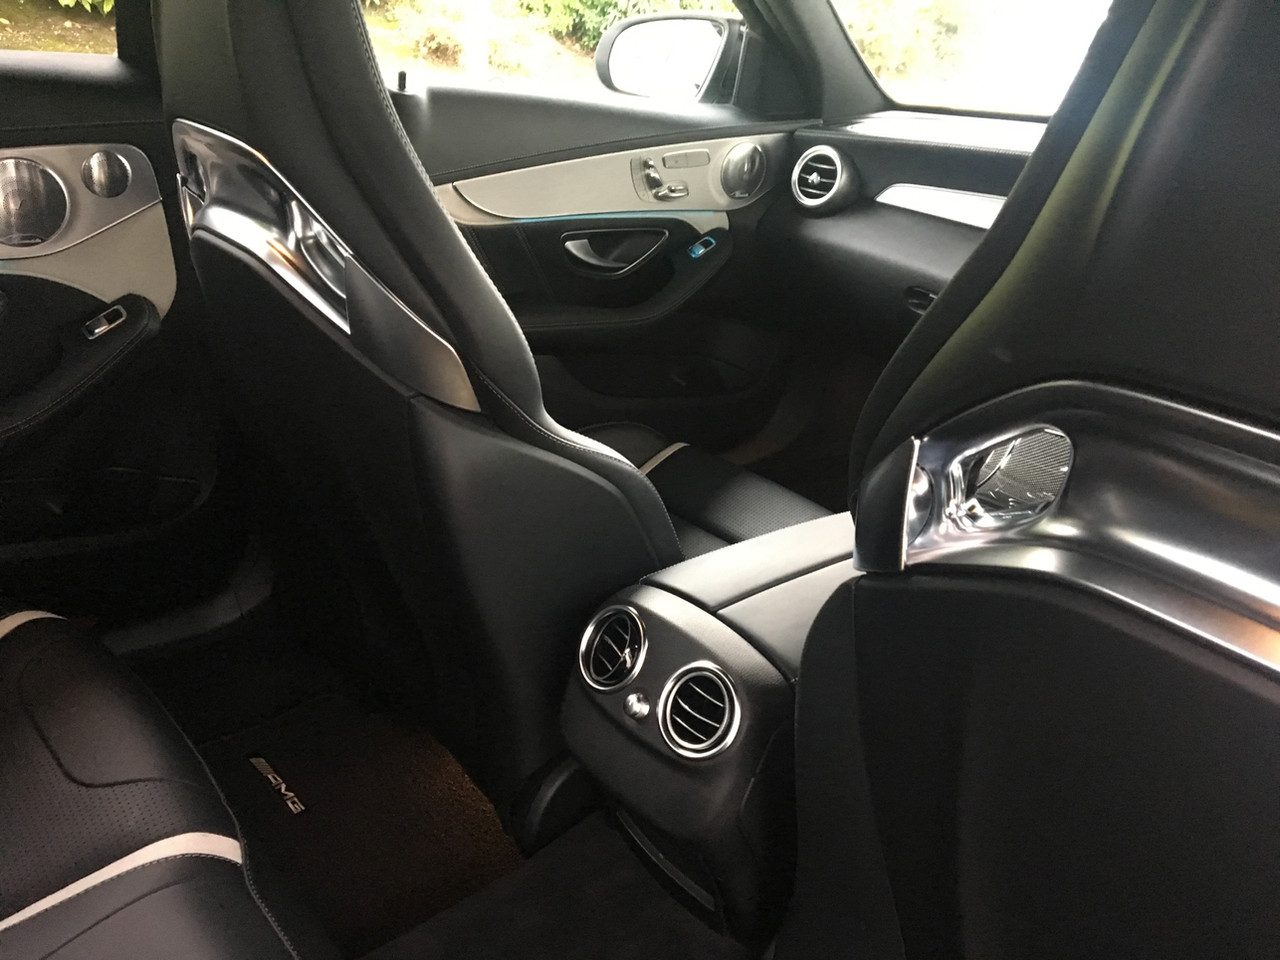 White Mercedes-AMG C63 S Interior